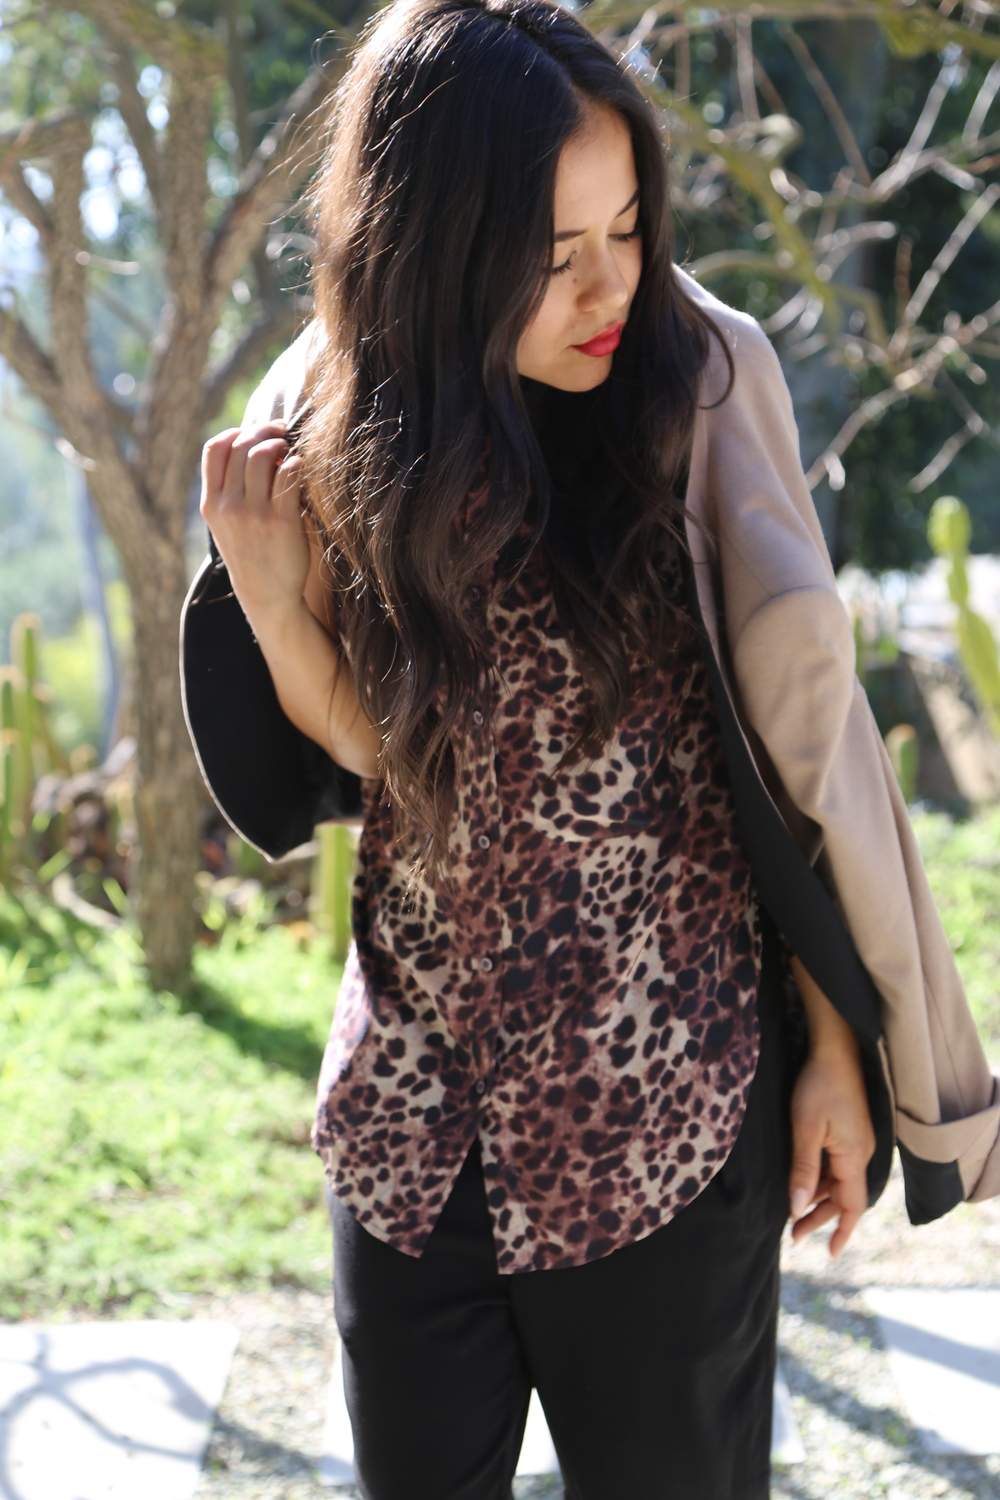 VANESSA-BELETIC-ISABEL-MARANT-LEOPARD-TOP-ZARA-BLAZER-LOS-ANGELES.JPG